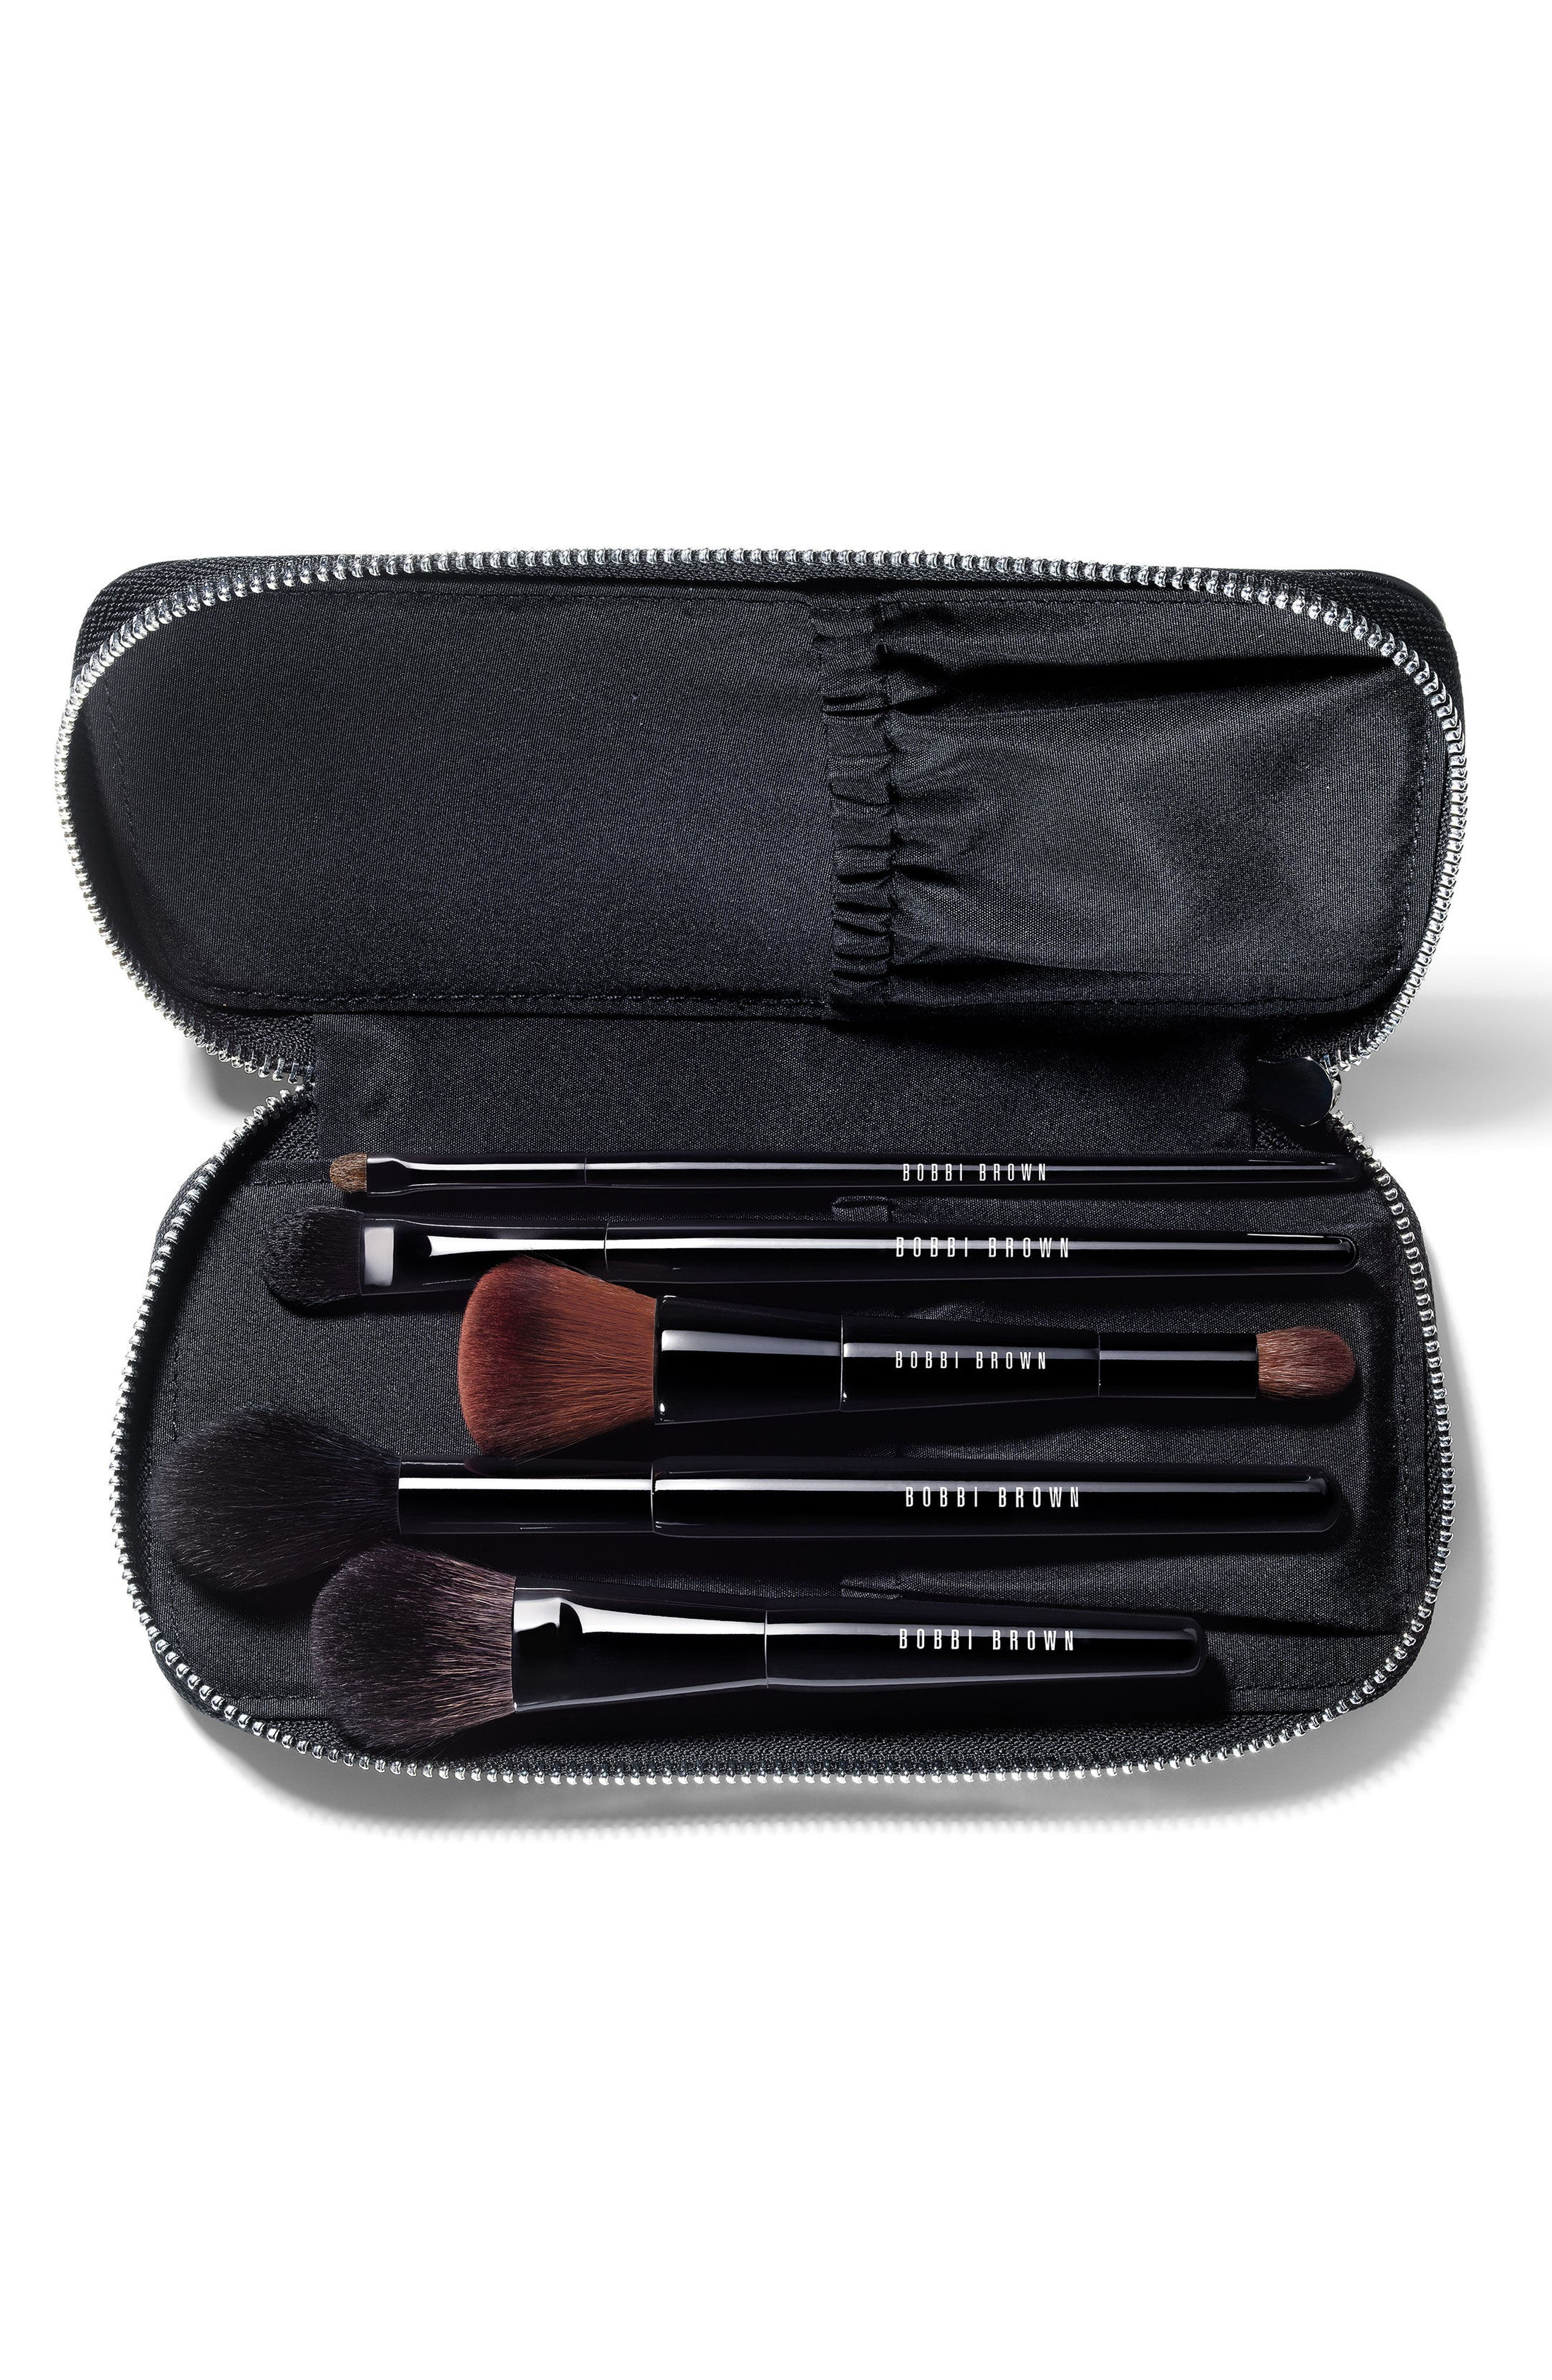 Bobbi Brown Bobbi on Trend Pro Brushes Collection ($264 Value)